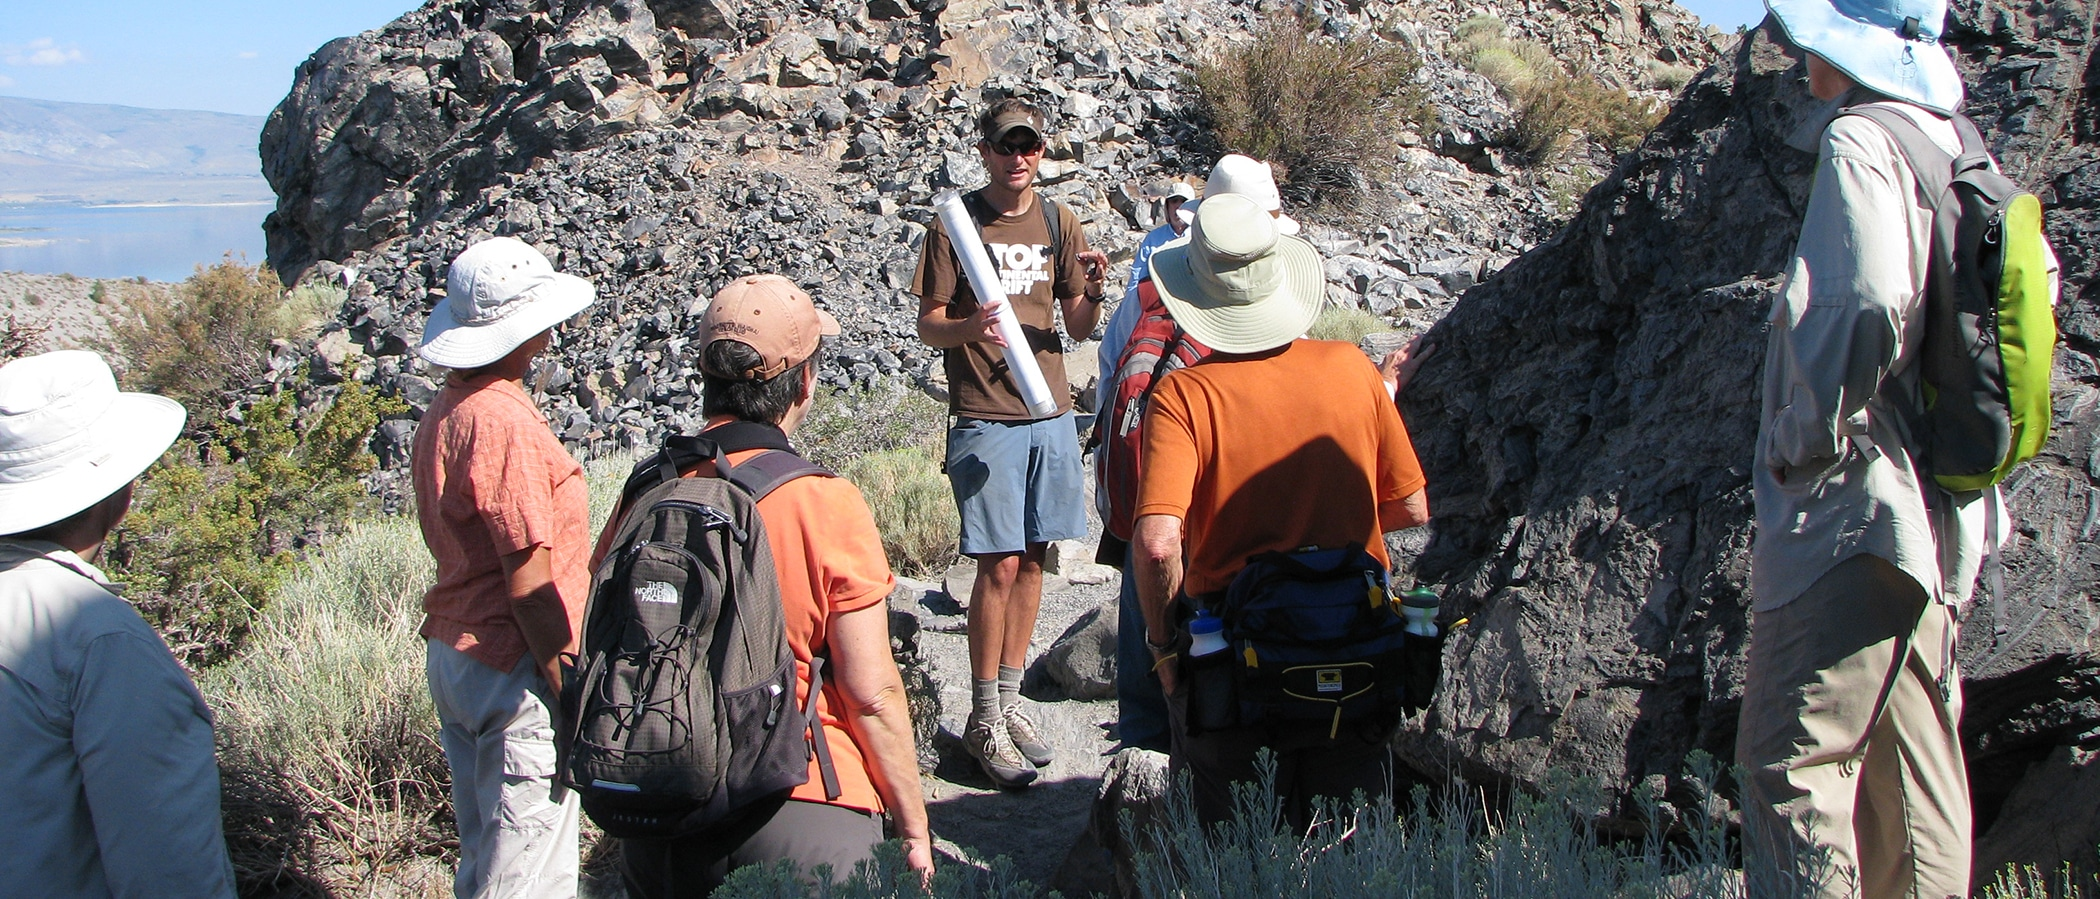 A man talks to a group in a rocky pathway.